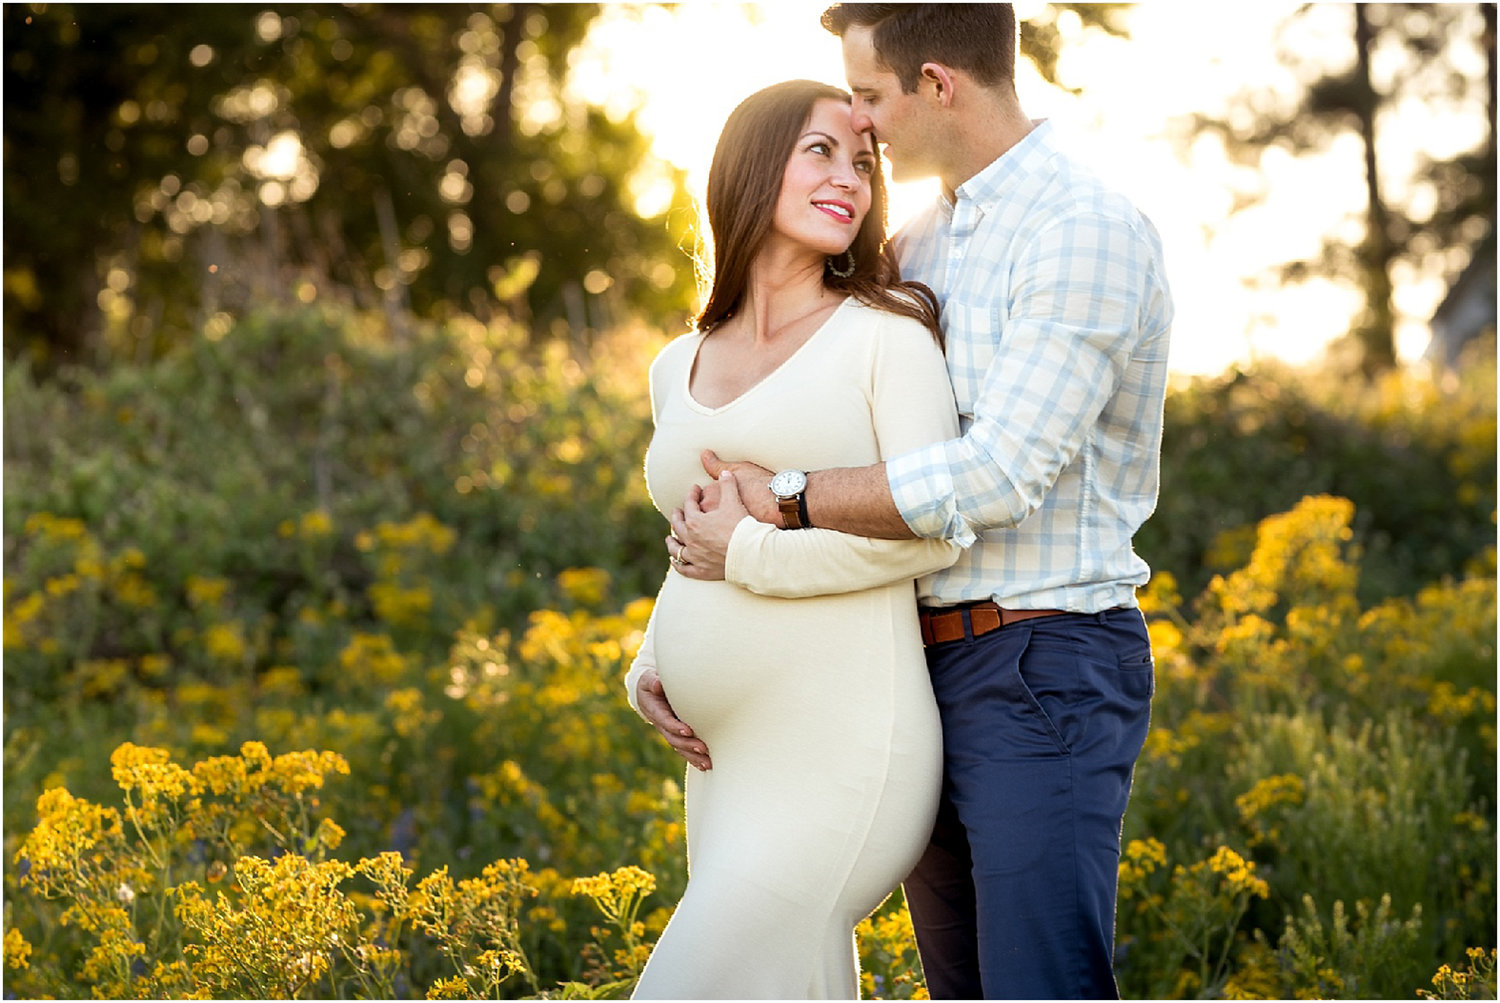 49f0732c166ed Houston Outdoor Maternity Session Featuring Mossy Trees and Texas  Bluebonnets | Houston, TX Maternity Photographer — Modern Houston Newborn +  Maternity ...